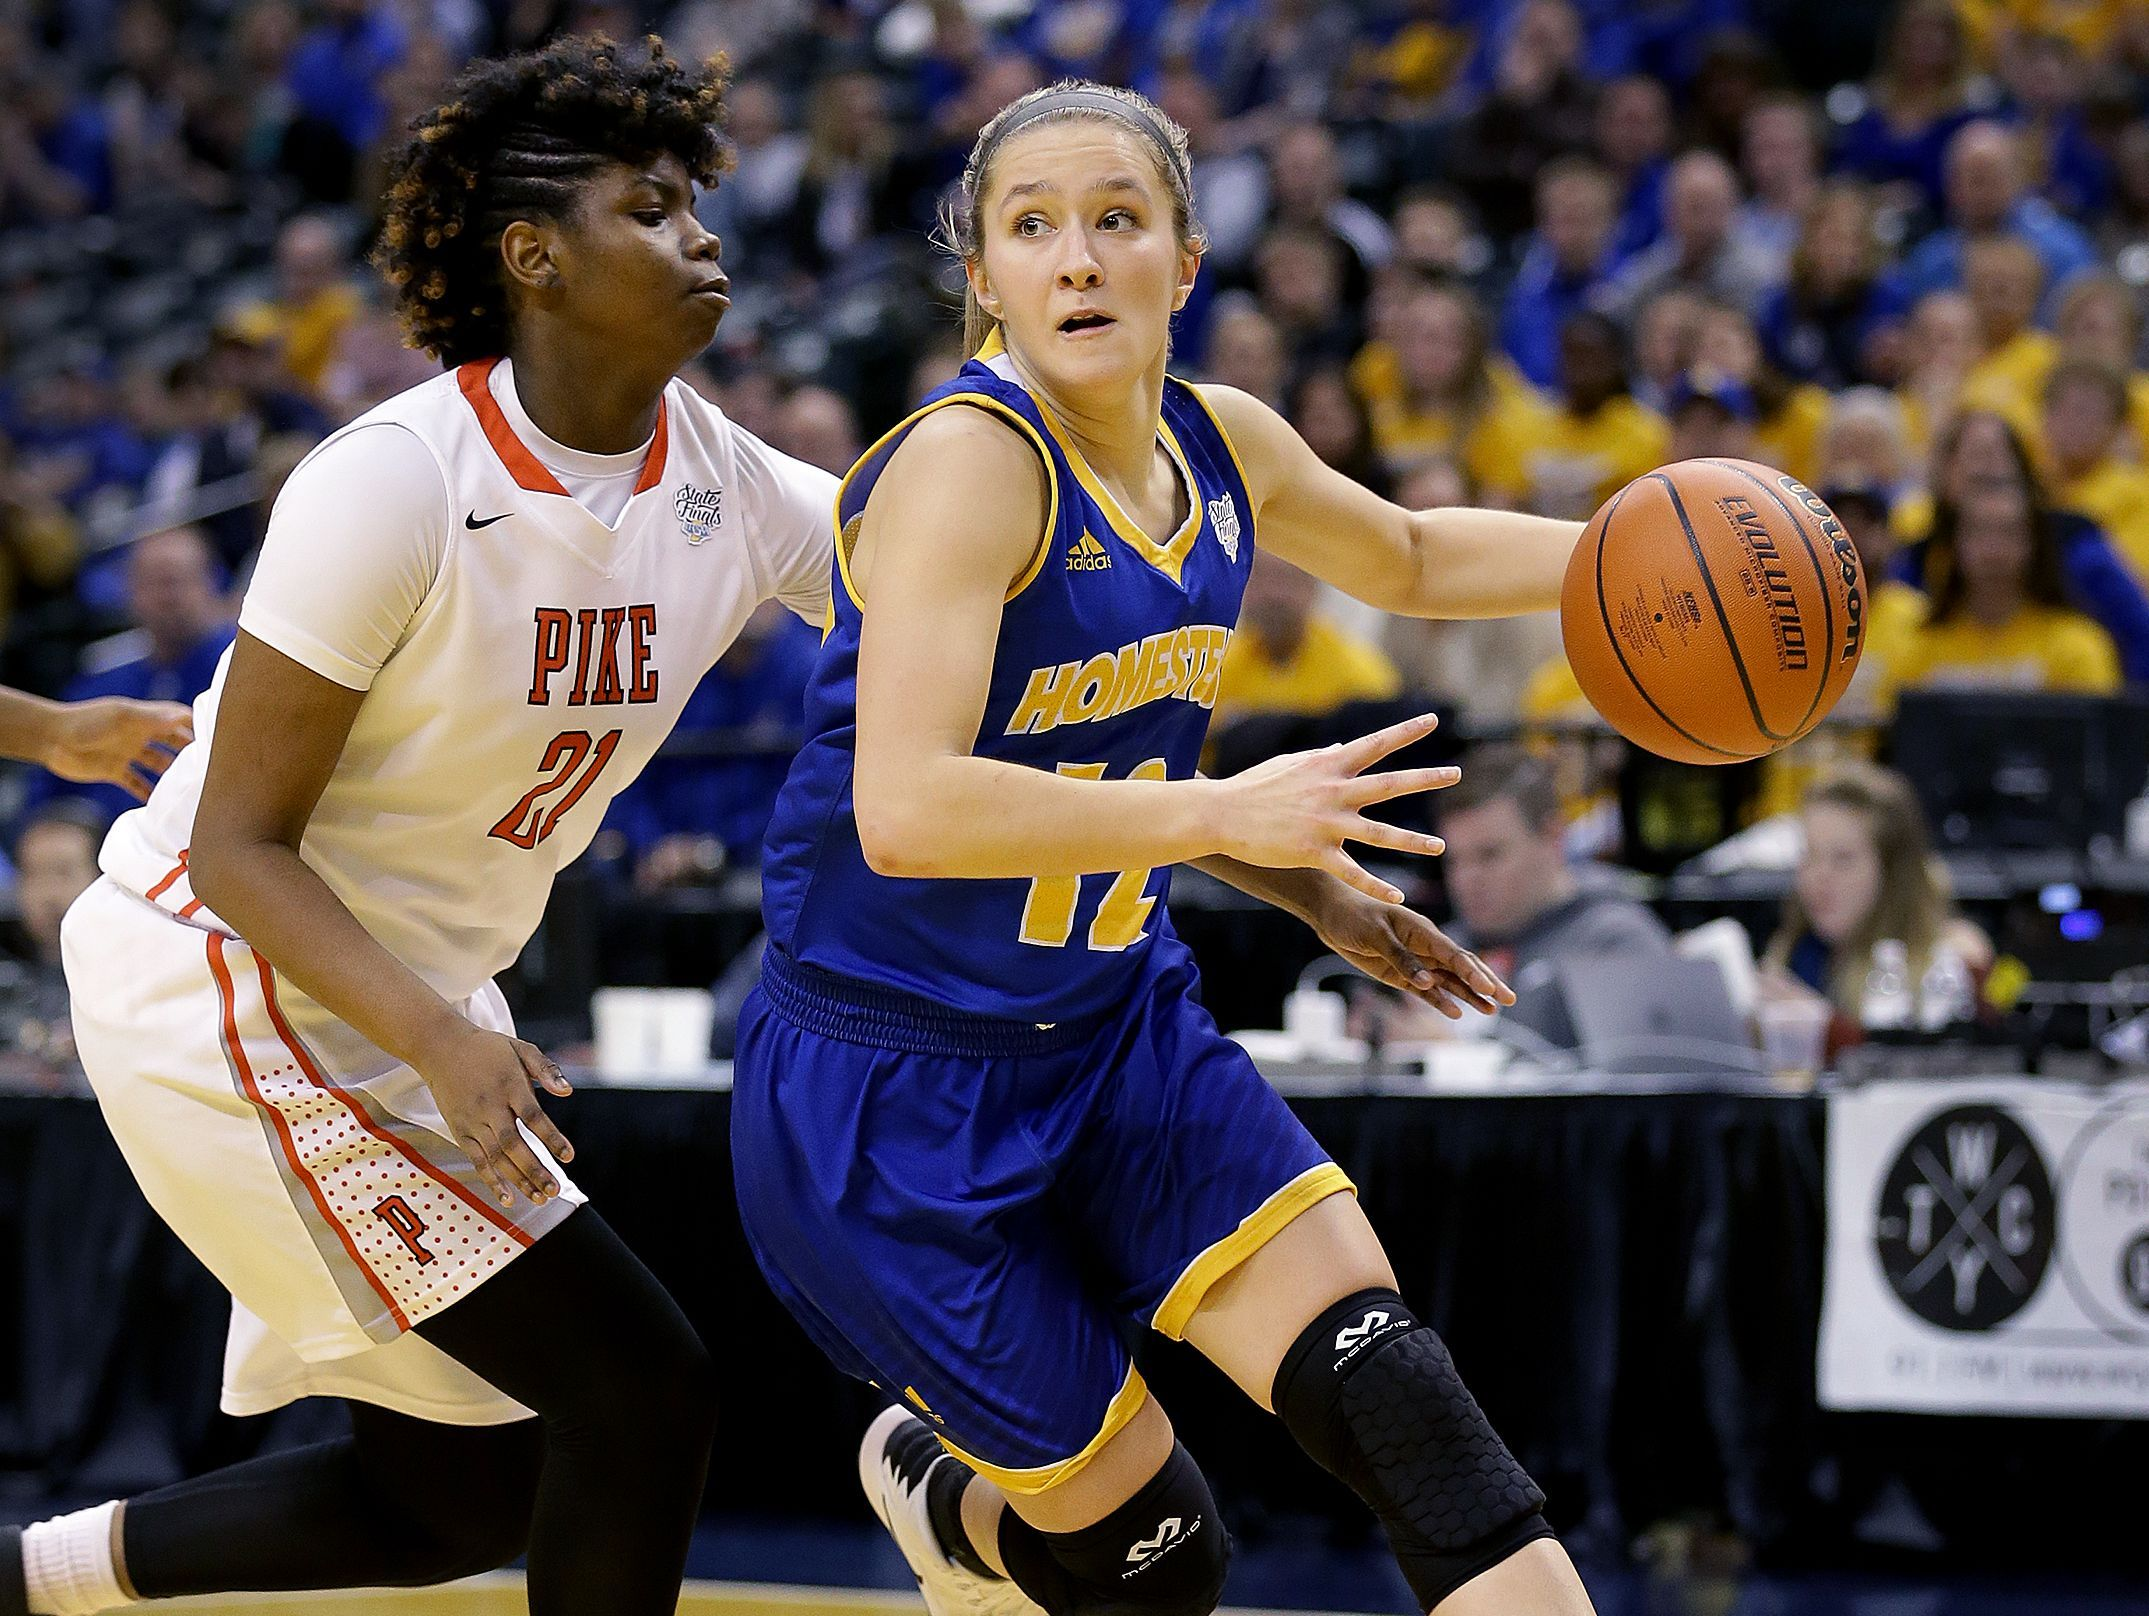 Homestead's Karissa McLaughlin (12) drives in the second half of their IHSAA 4A Girls Basketball State Finals game Feb. 25, 2017.